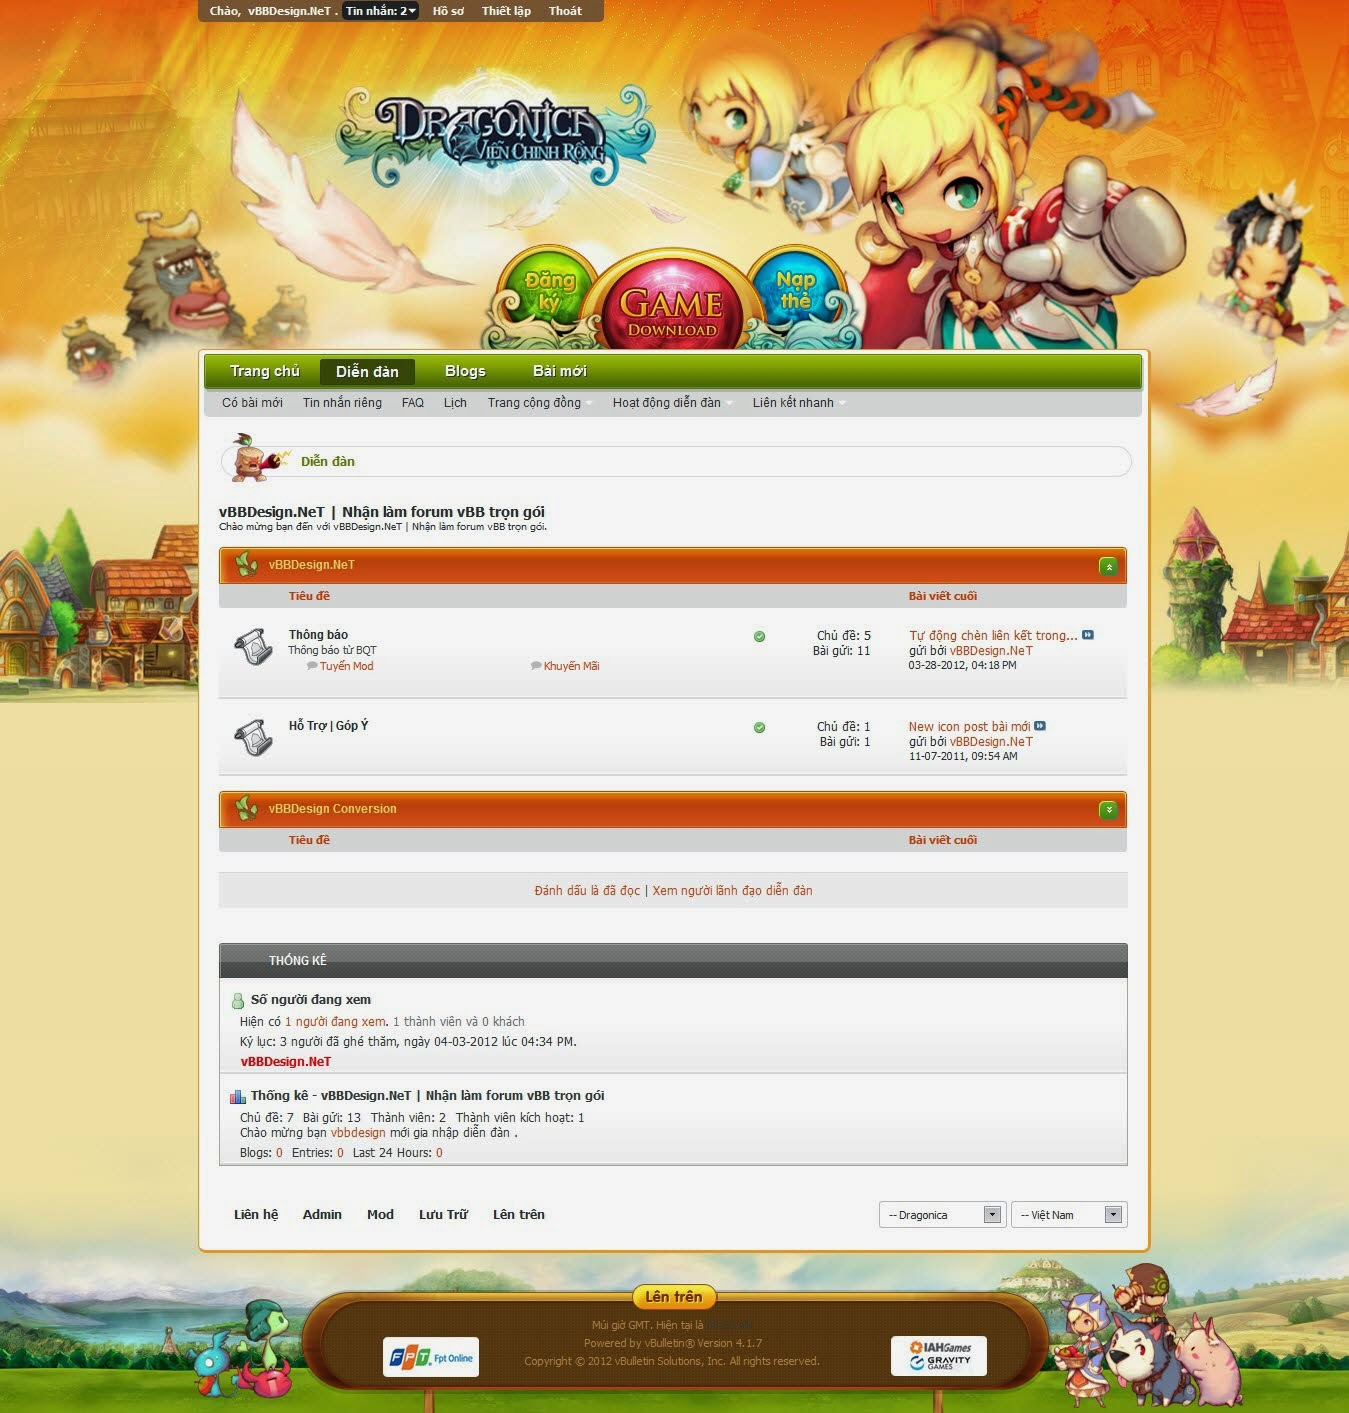 Skin forum game online - Skin Games Dragonica